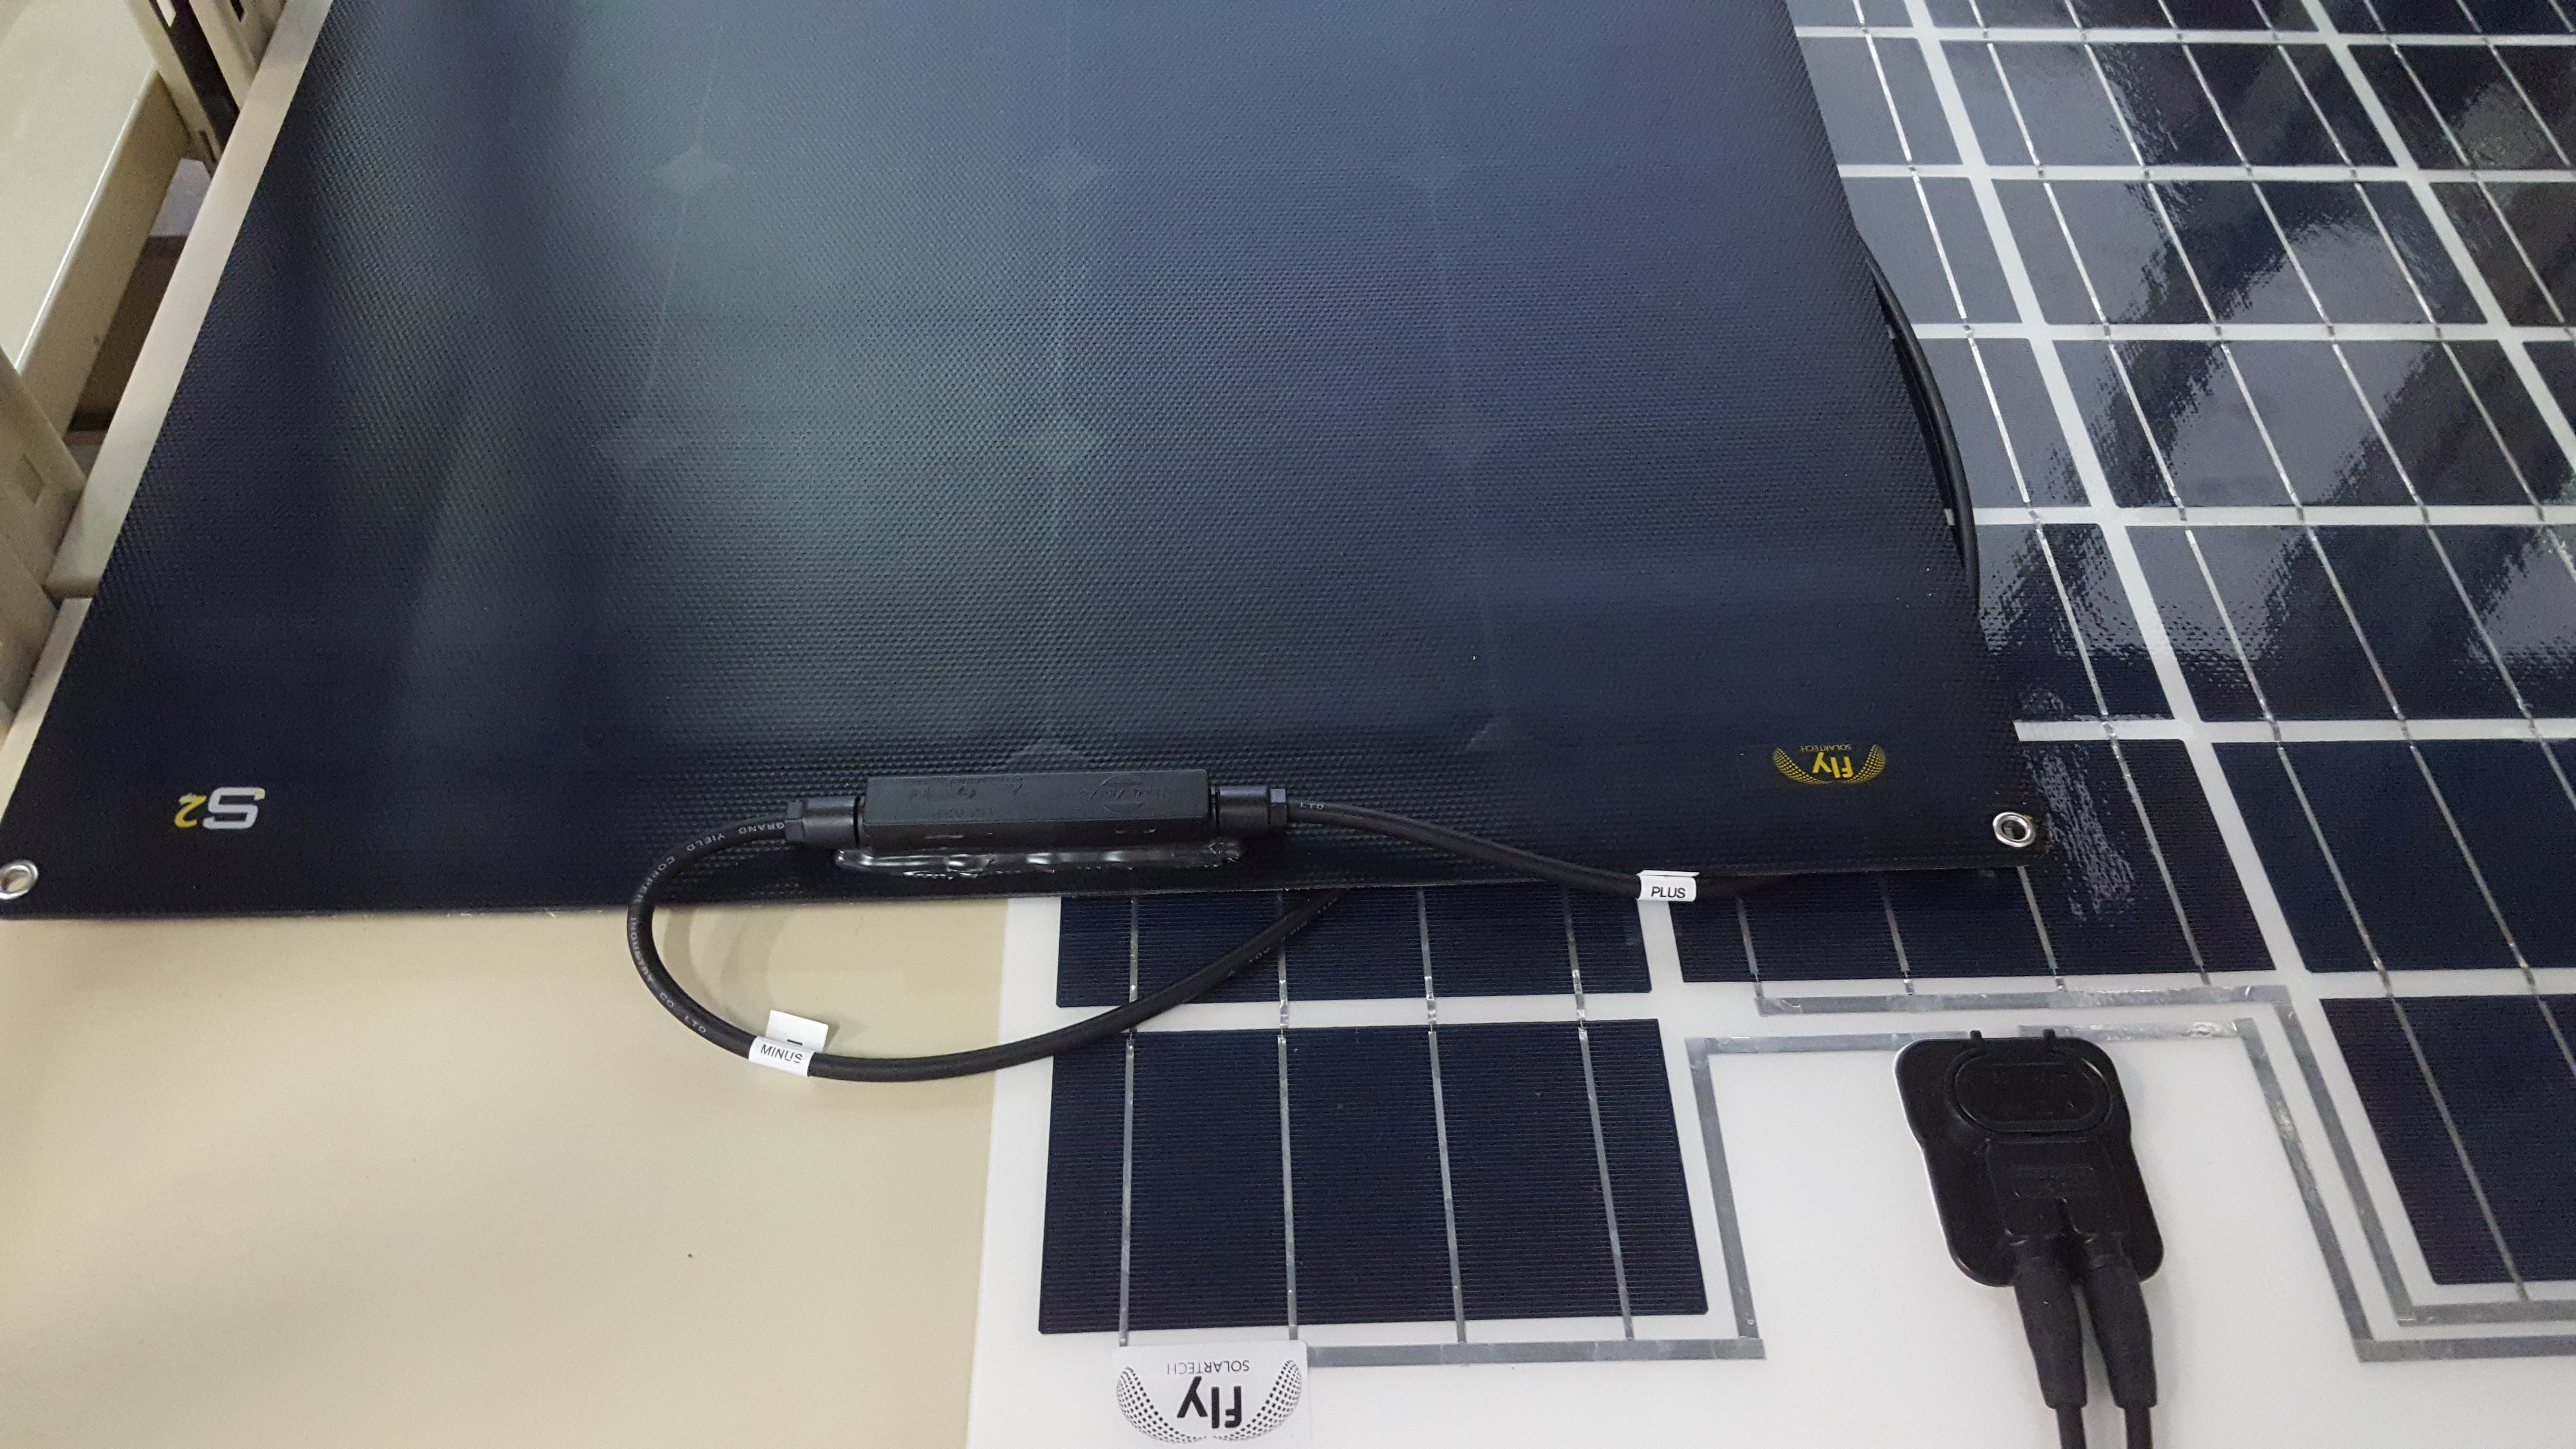 How To Install Solar Panel On Bimini Fly Solartech Solutions Srl Marine Wiring Use The Hook And Loop Attach Panels